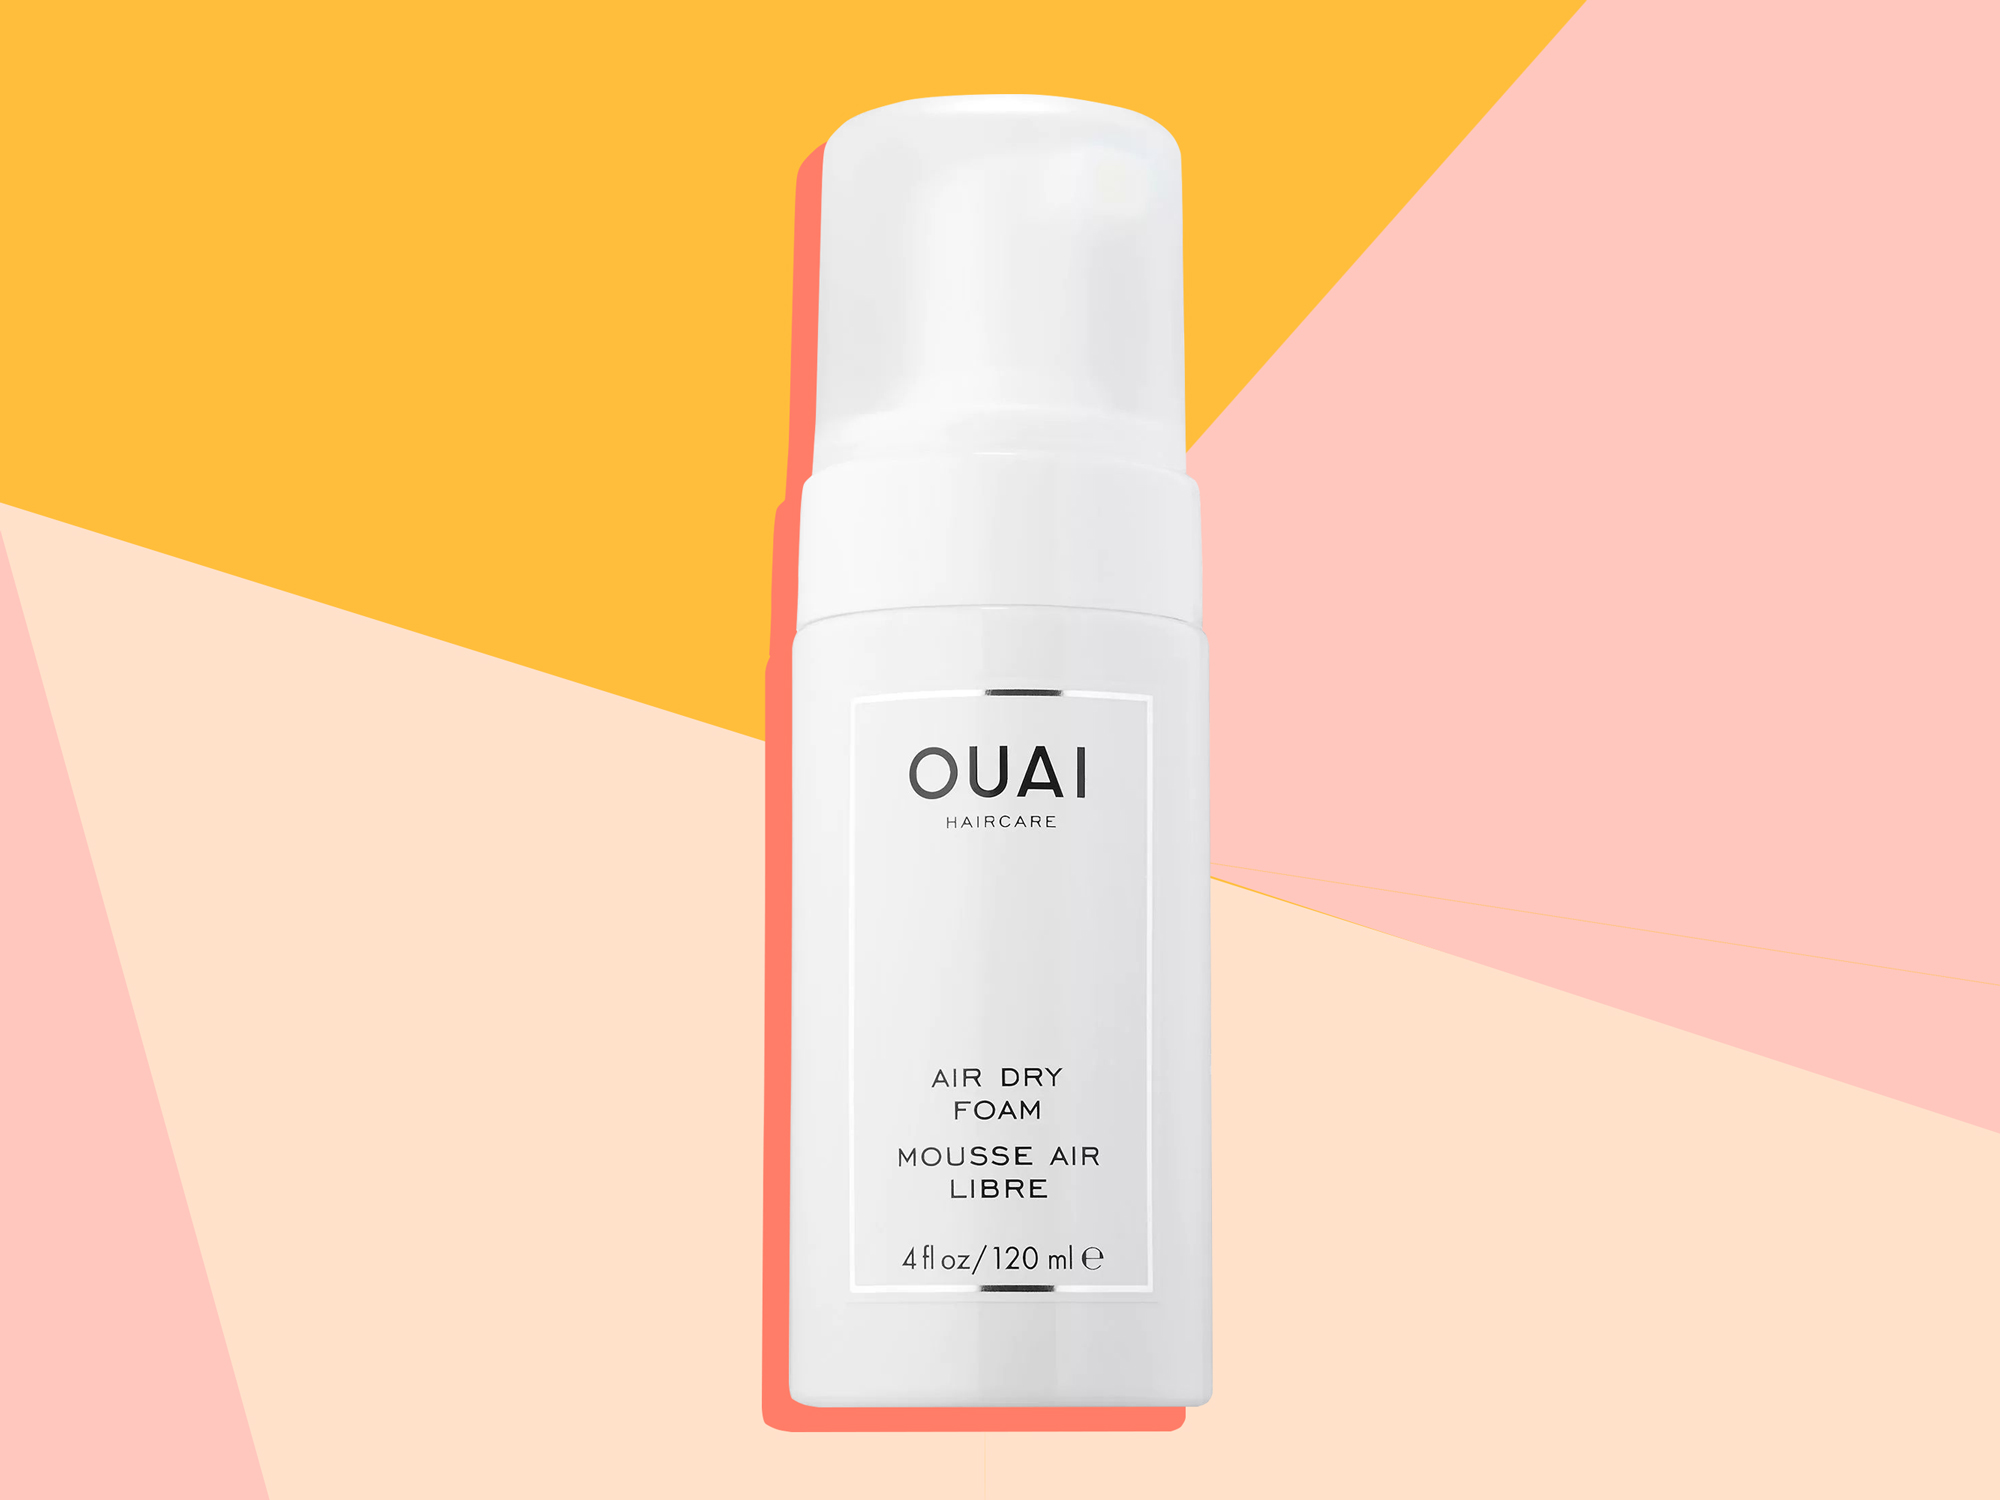 This New Product Gave Me Perfect Waves Without a Curling Iron